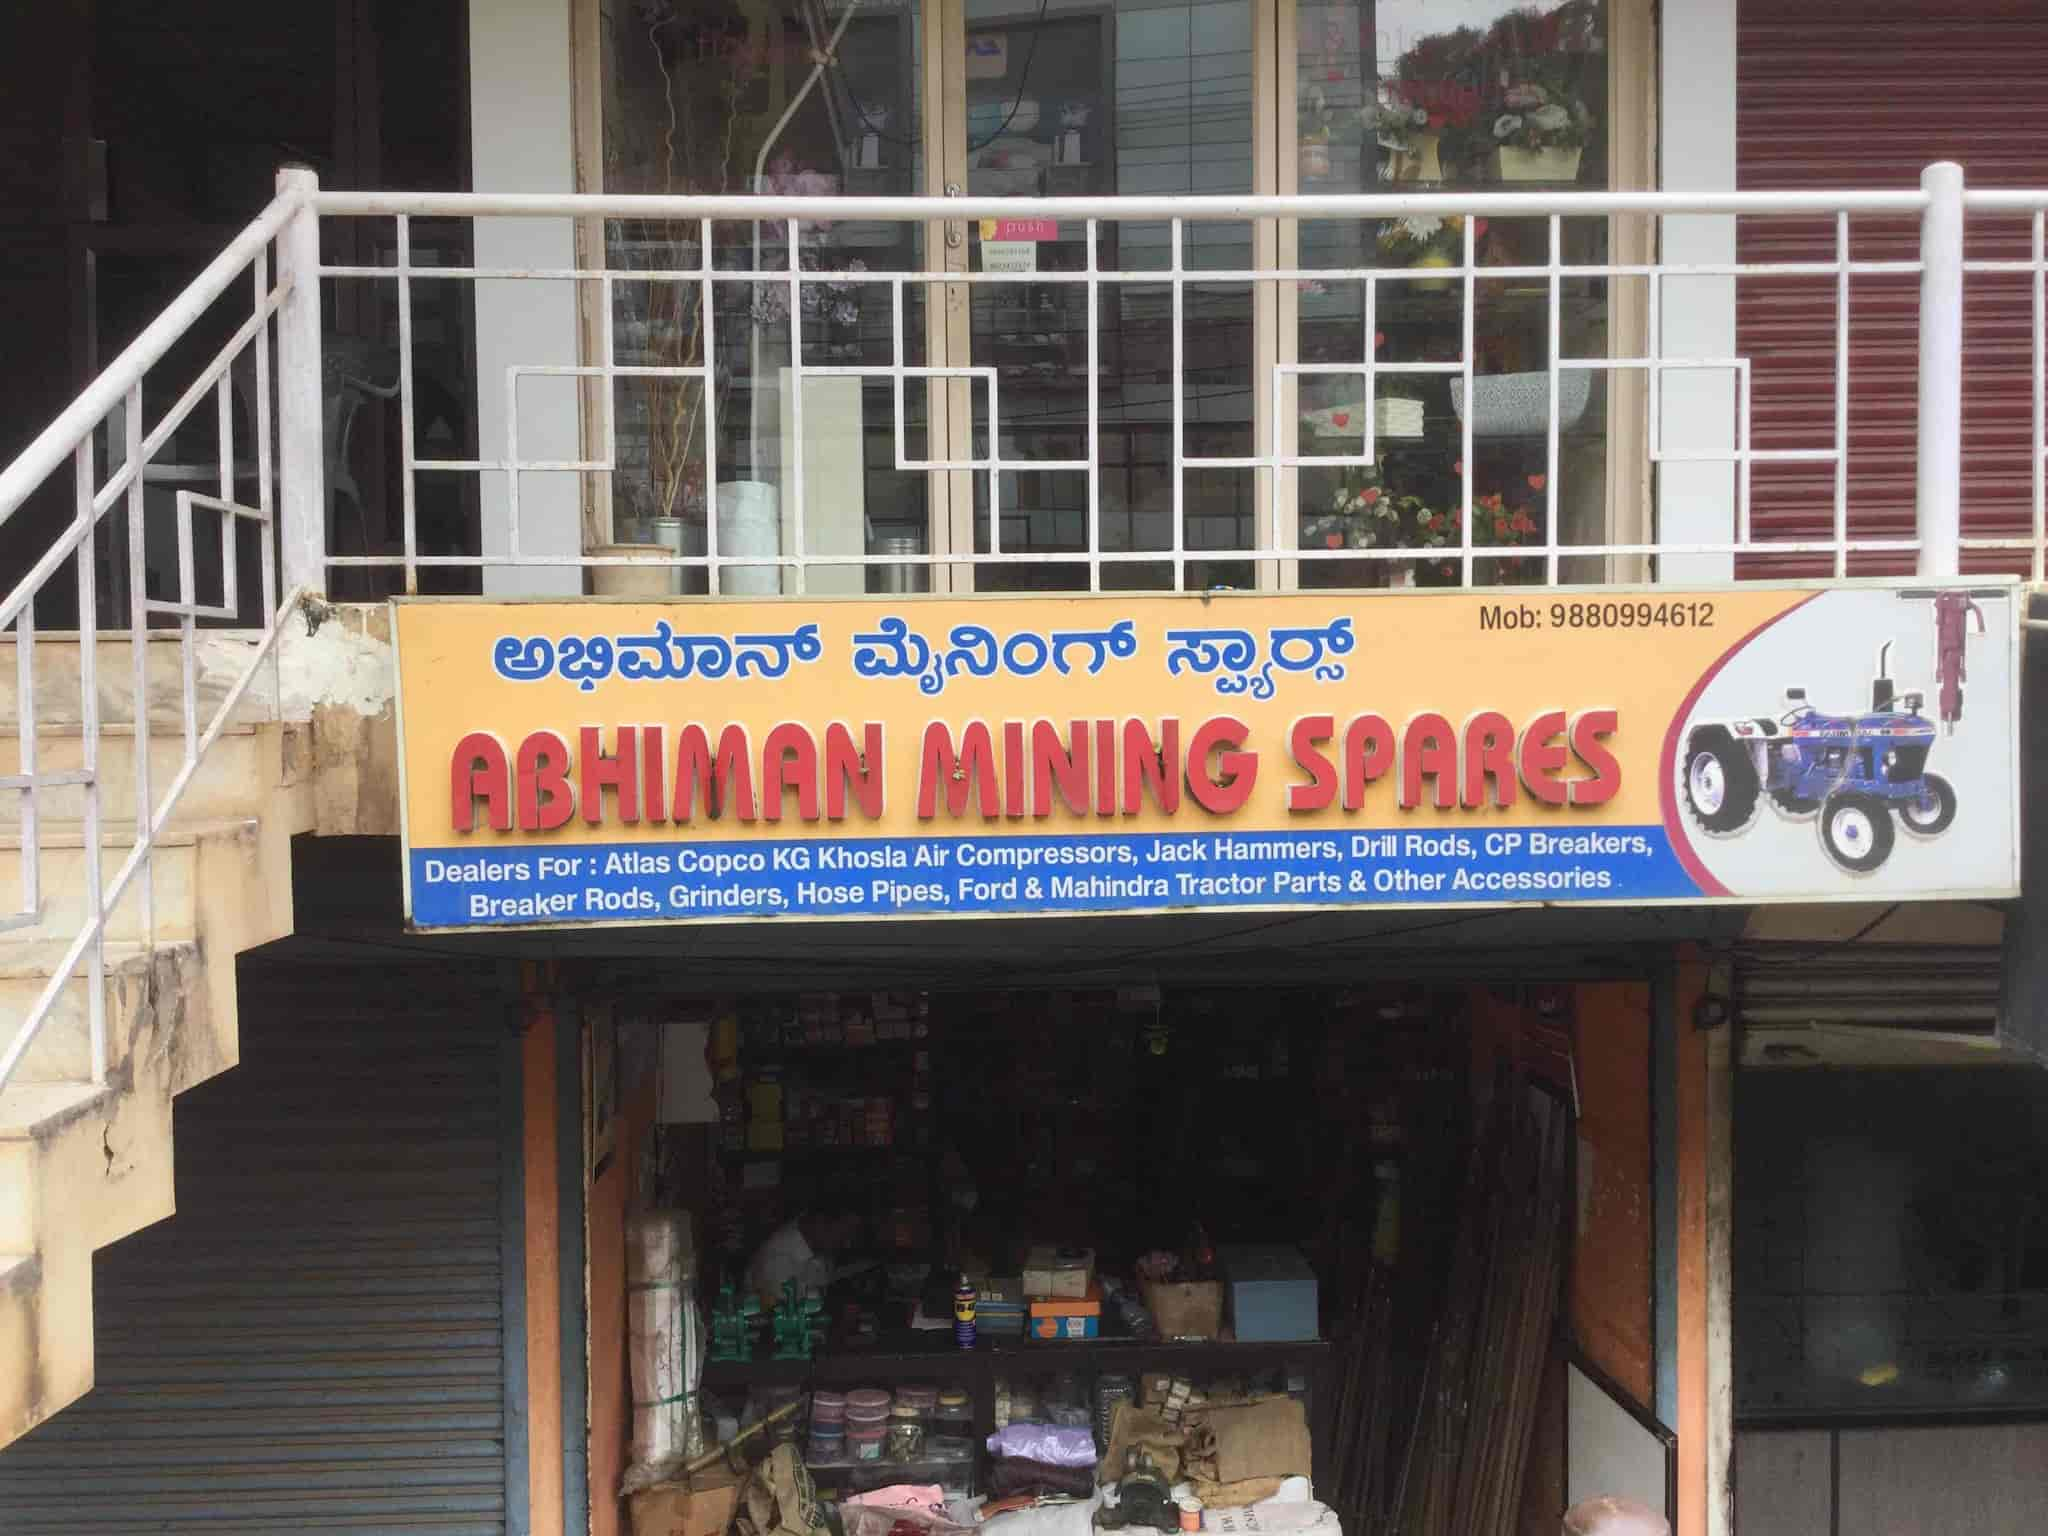 Abhiman Mining Spares Photos, Chillimbi, Mangalore- Pictures